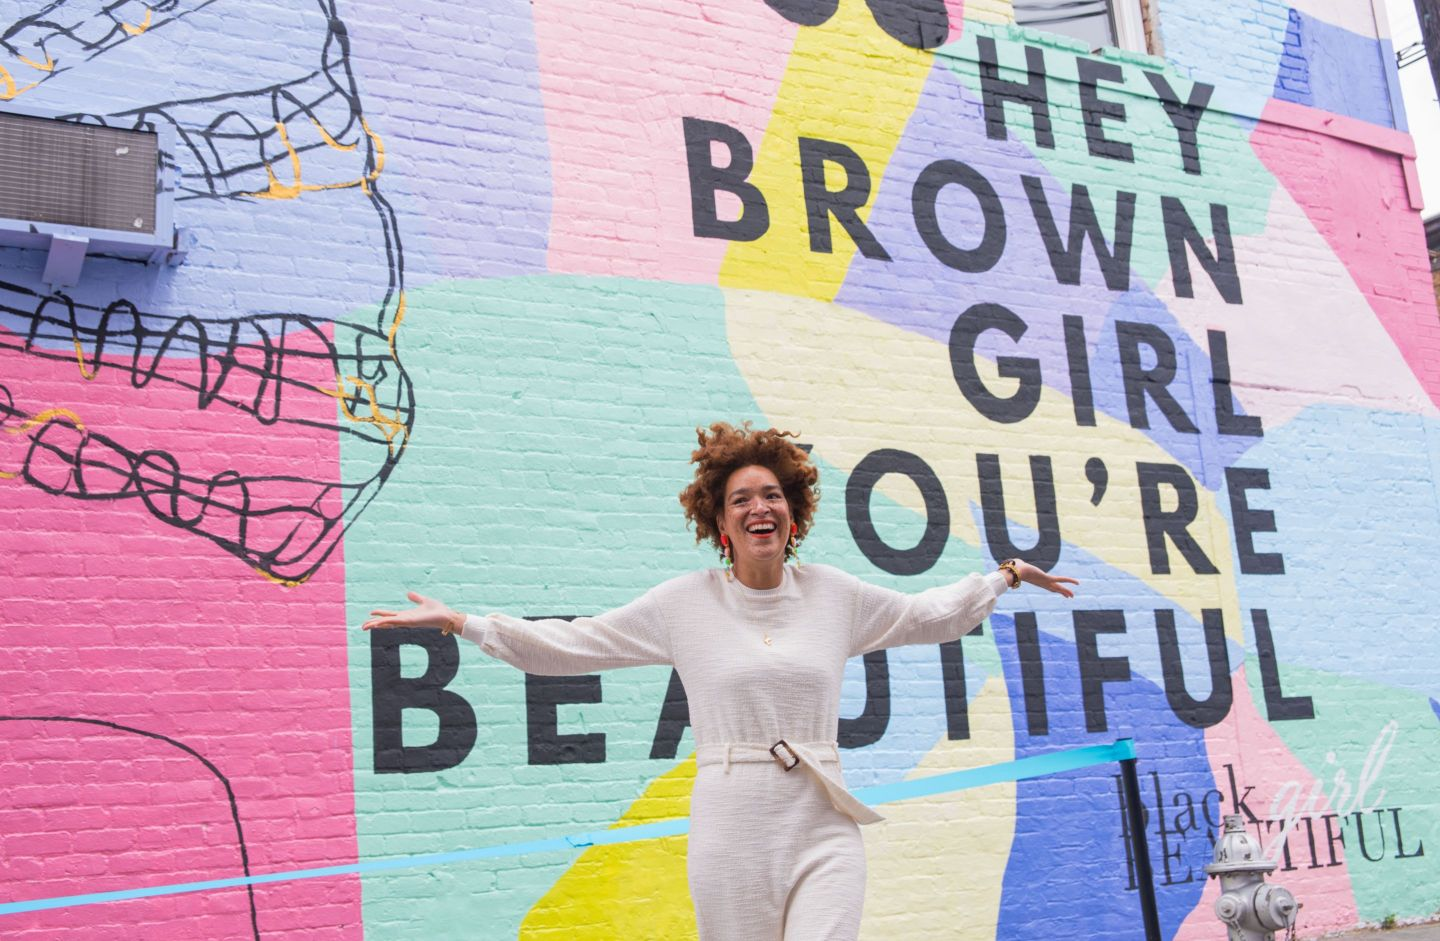 wc_heybrowngirl-77-1440x941 Artist Celebrates Black Girl Magic Through Mural and Shares Her Favorite Black Women Owned Spots in ATL